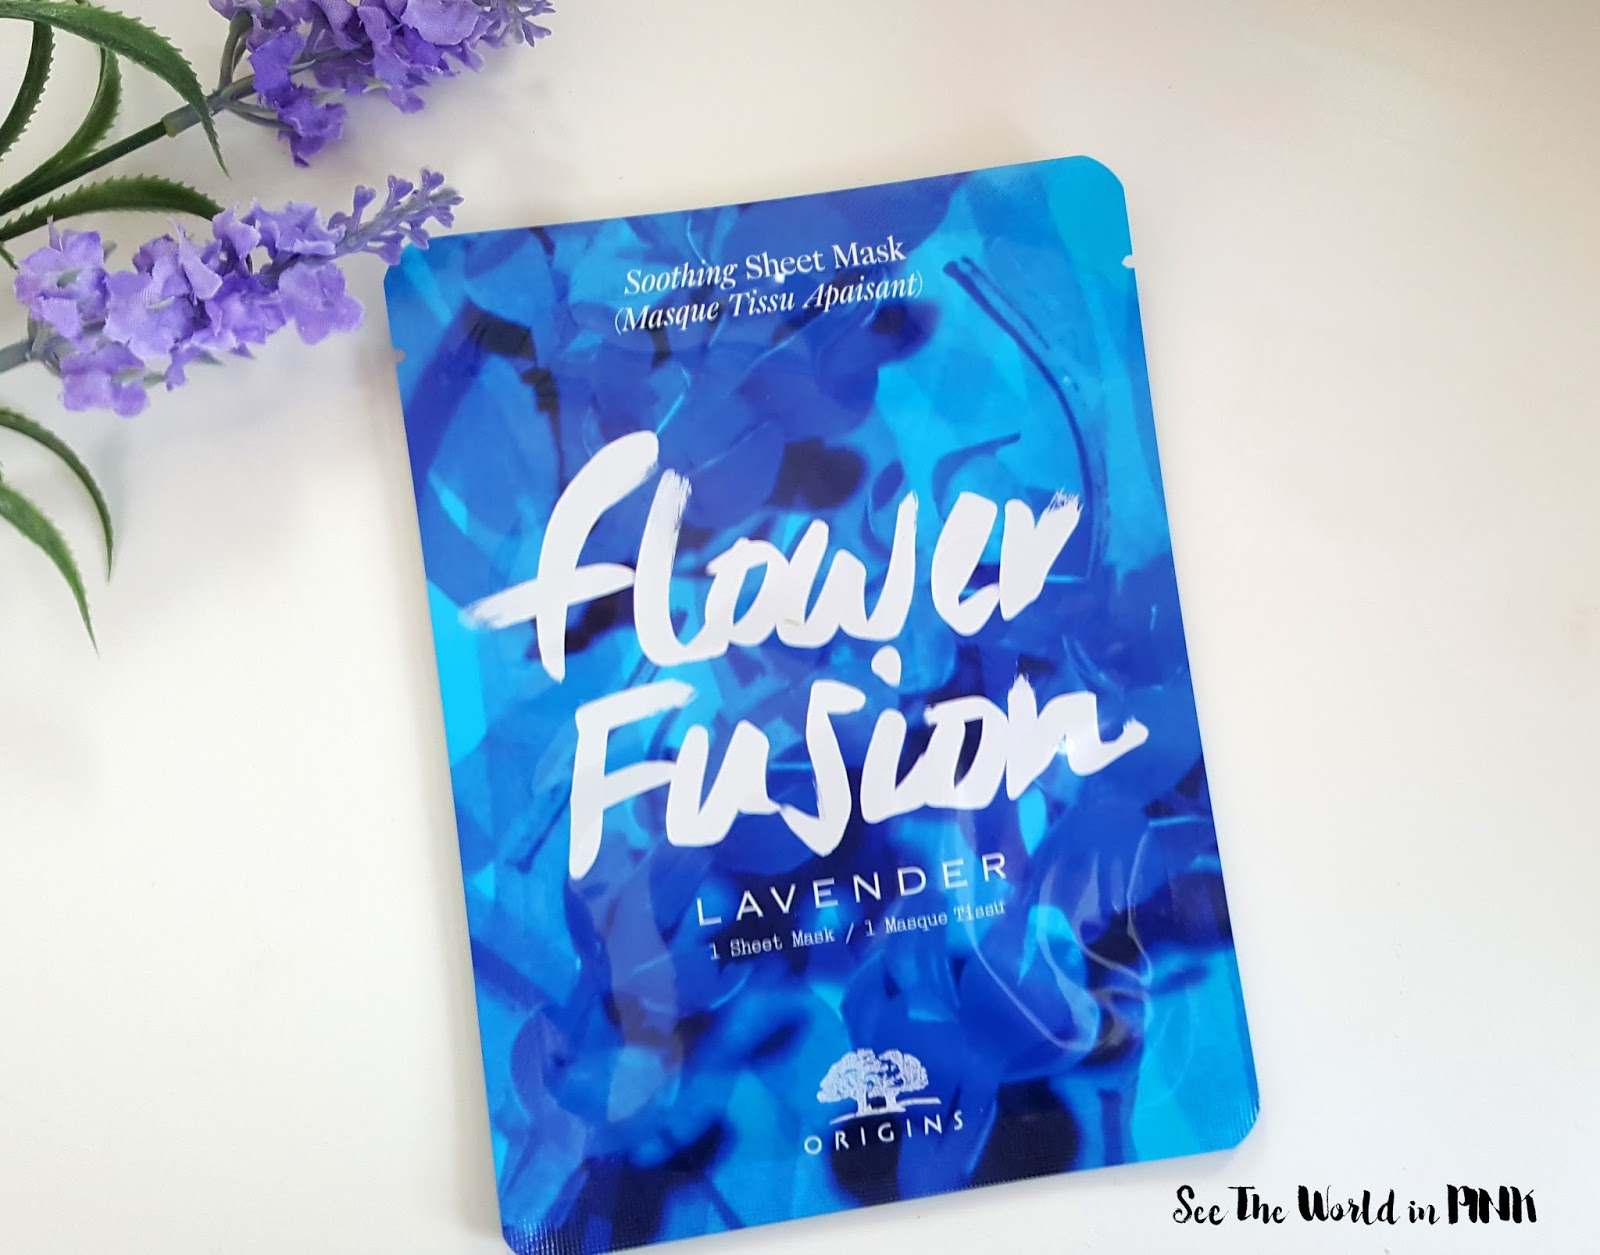 Mask Wednesday - Origins Flower Fusion Lavender Soothing Sheet Mask Review